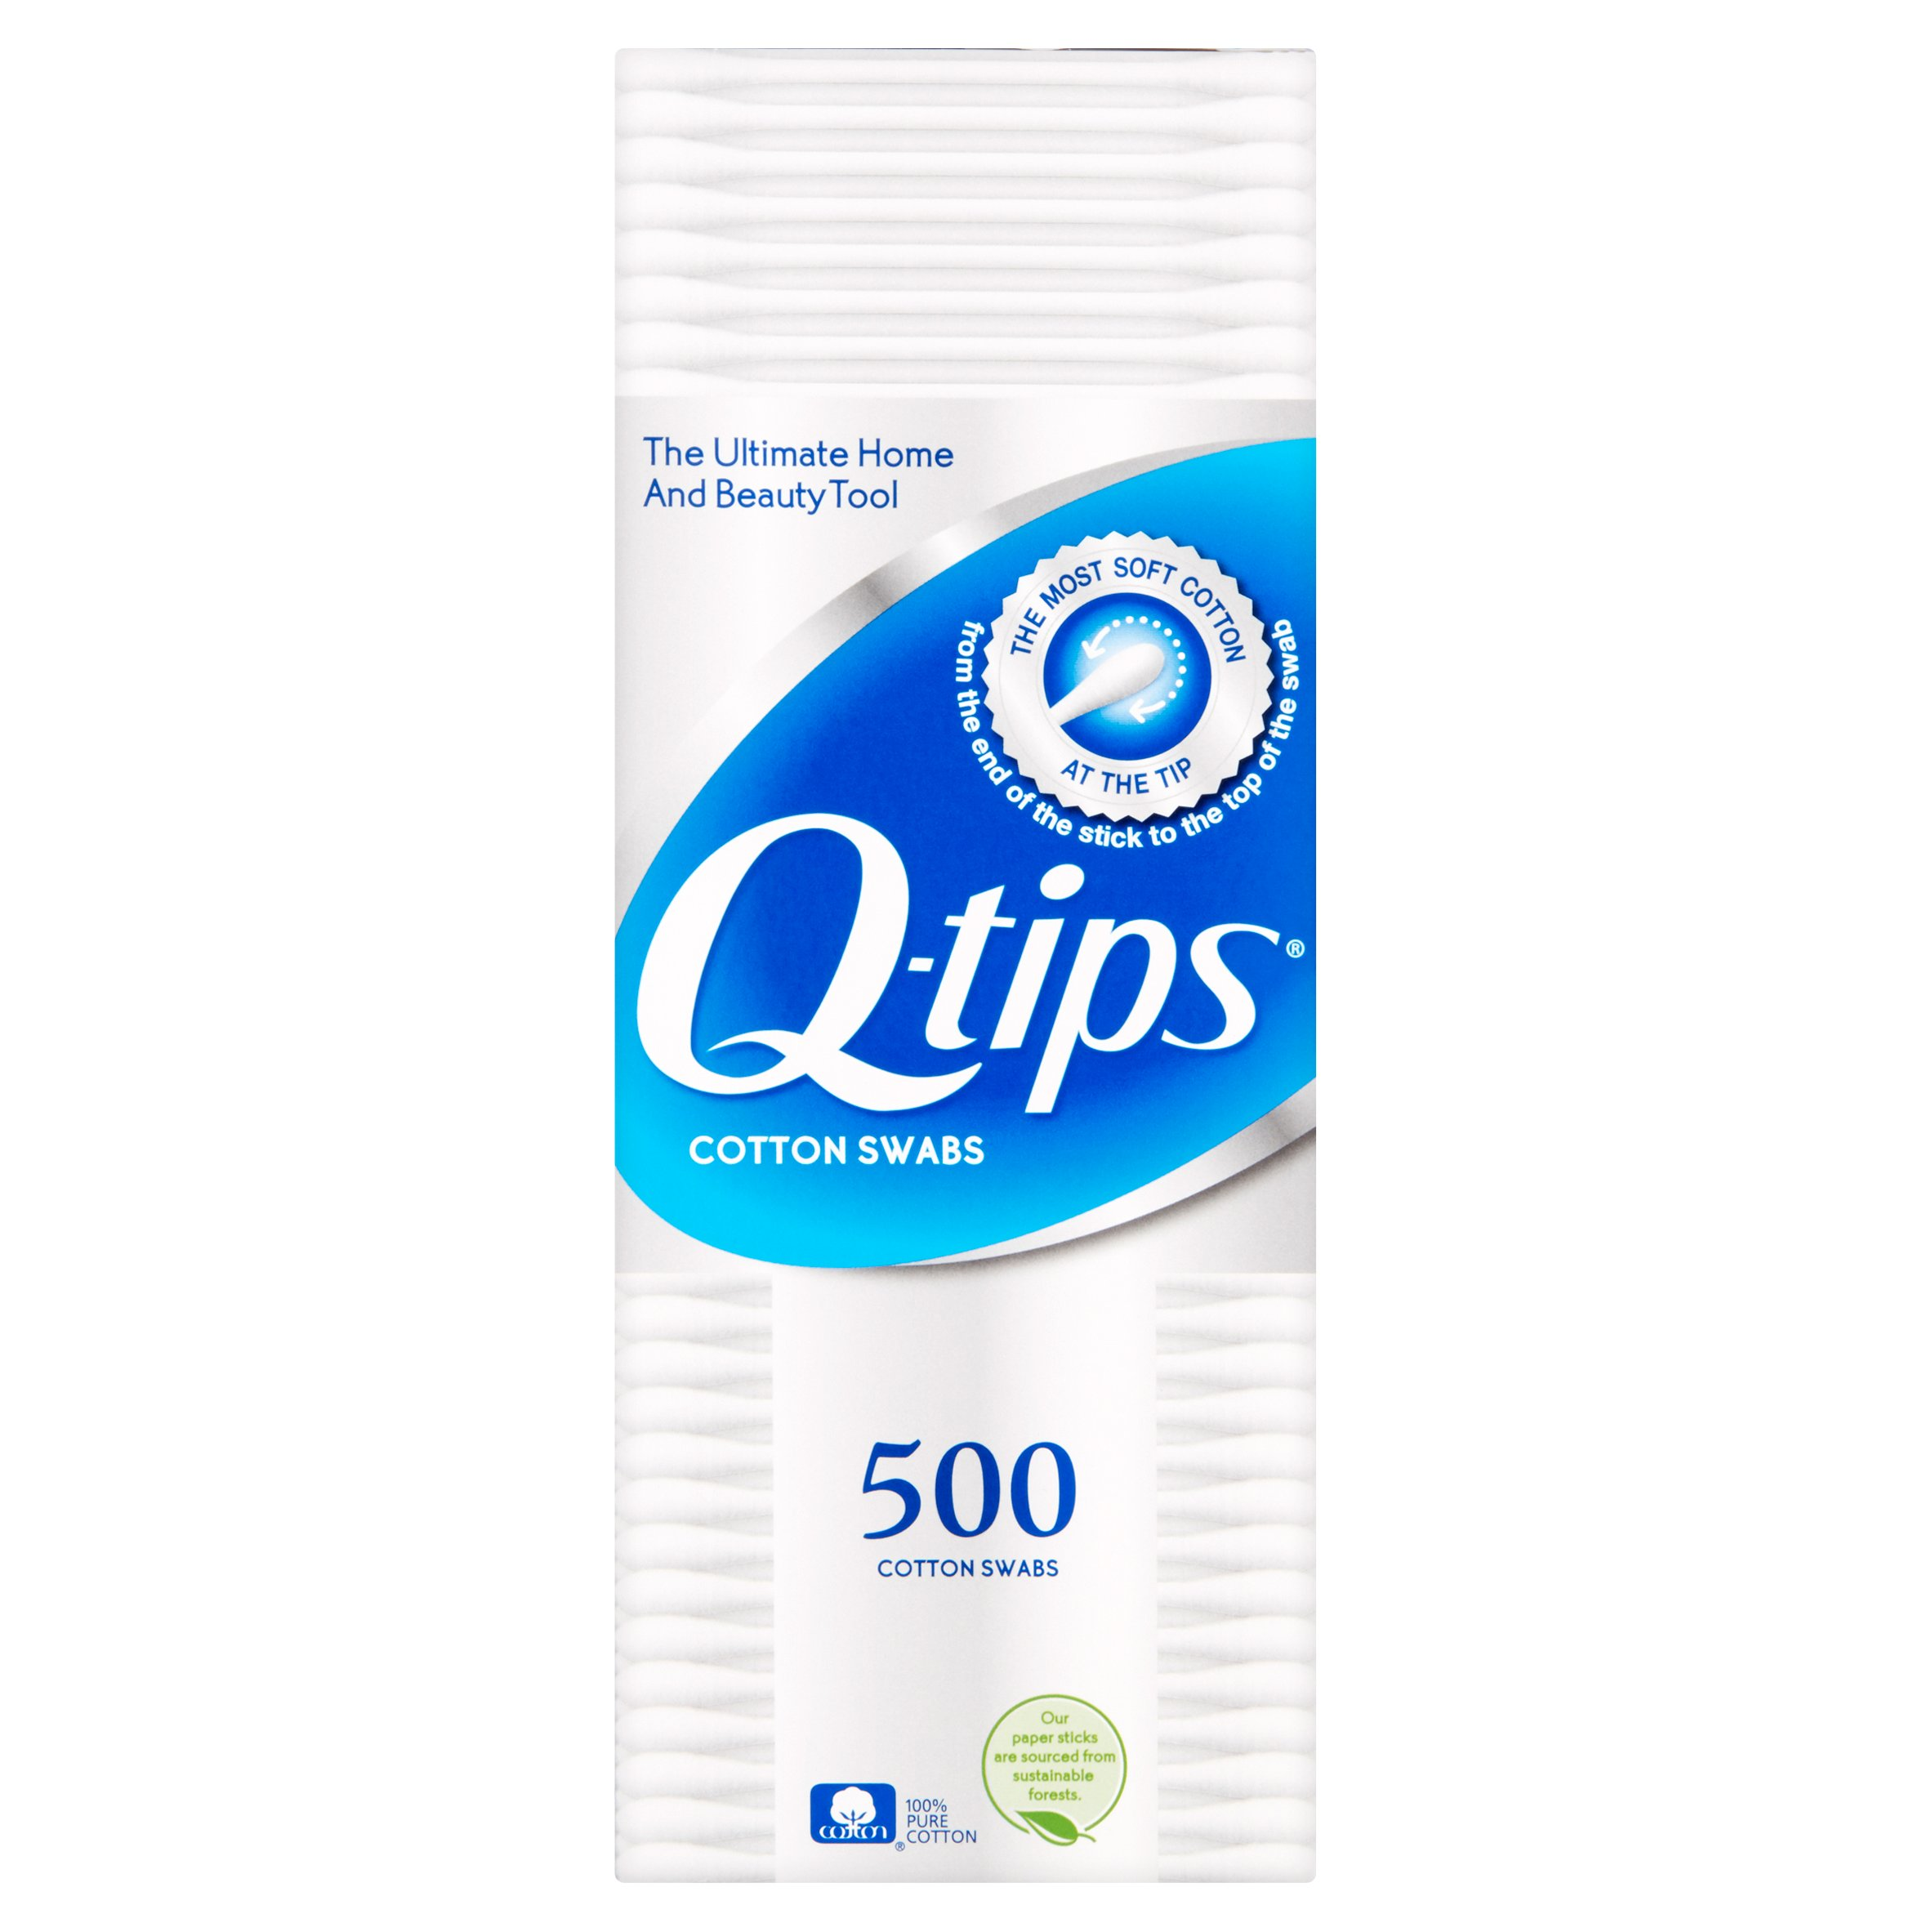 Q-tips Cotton Swabs 1000 ct